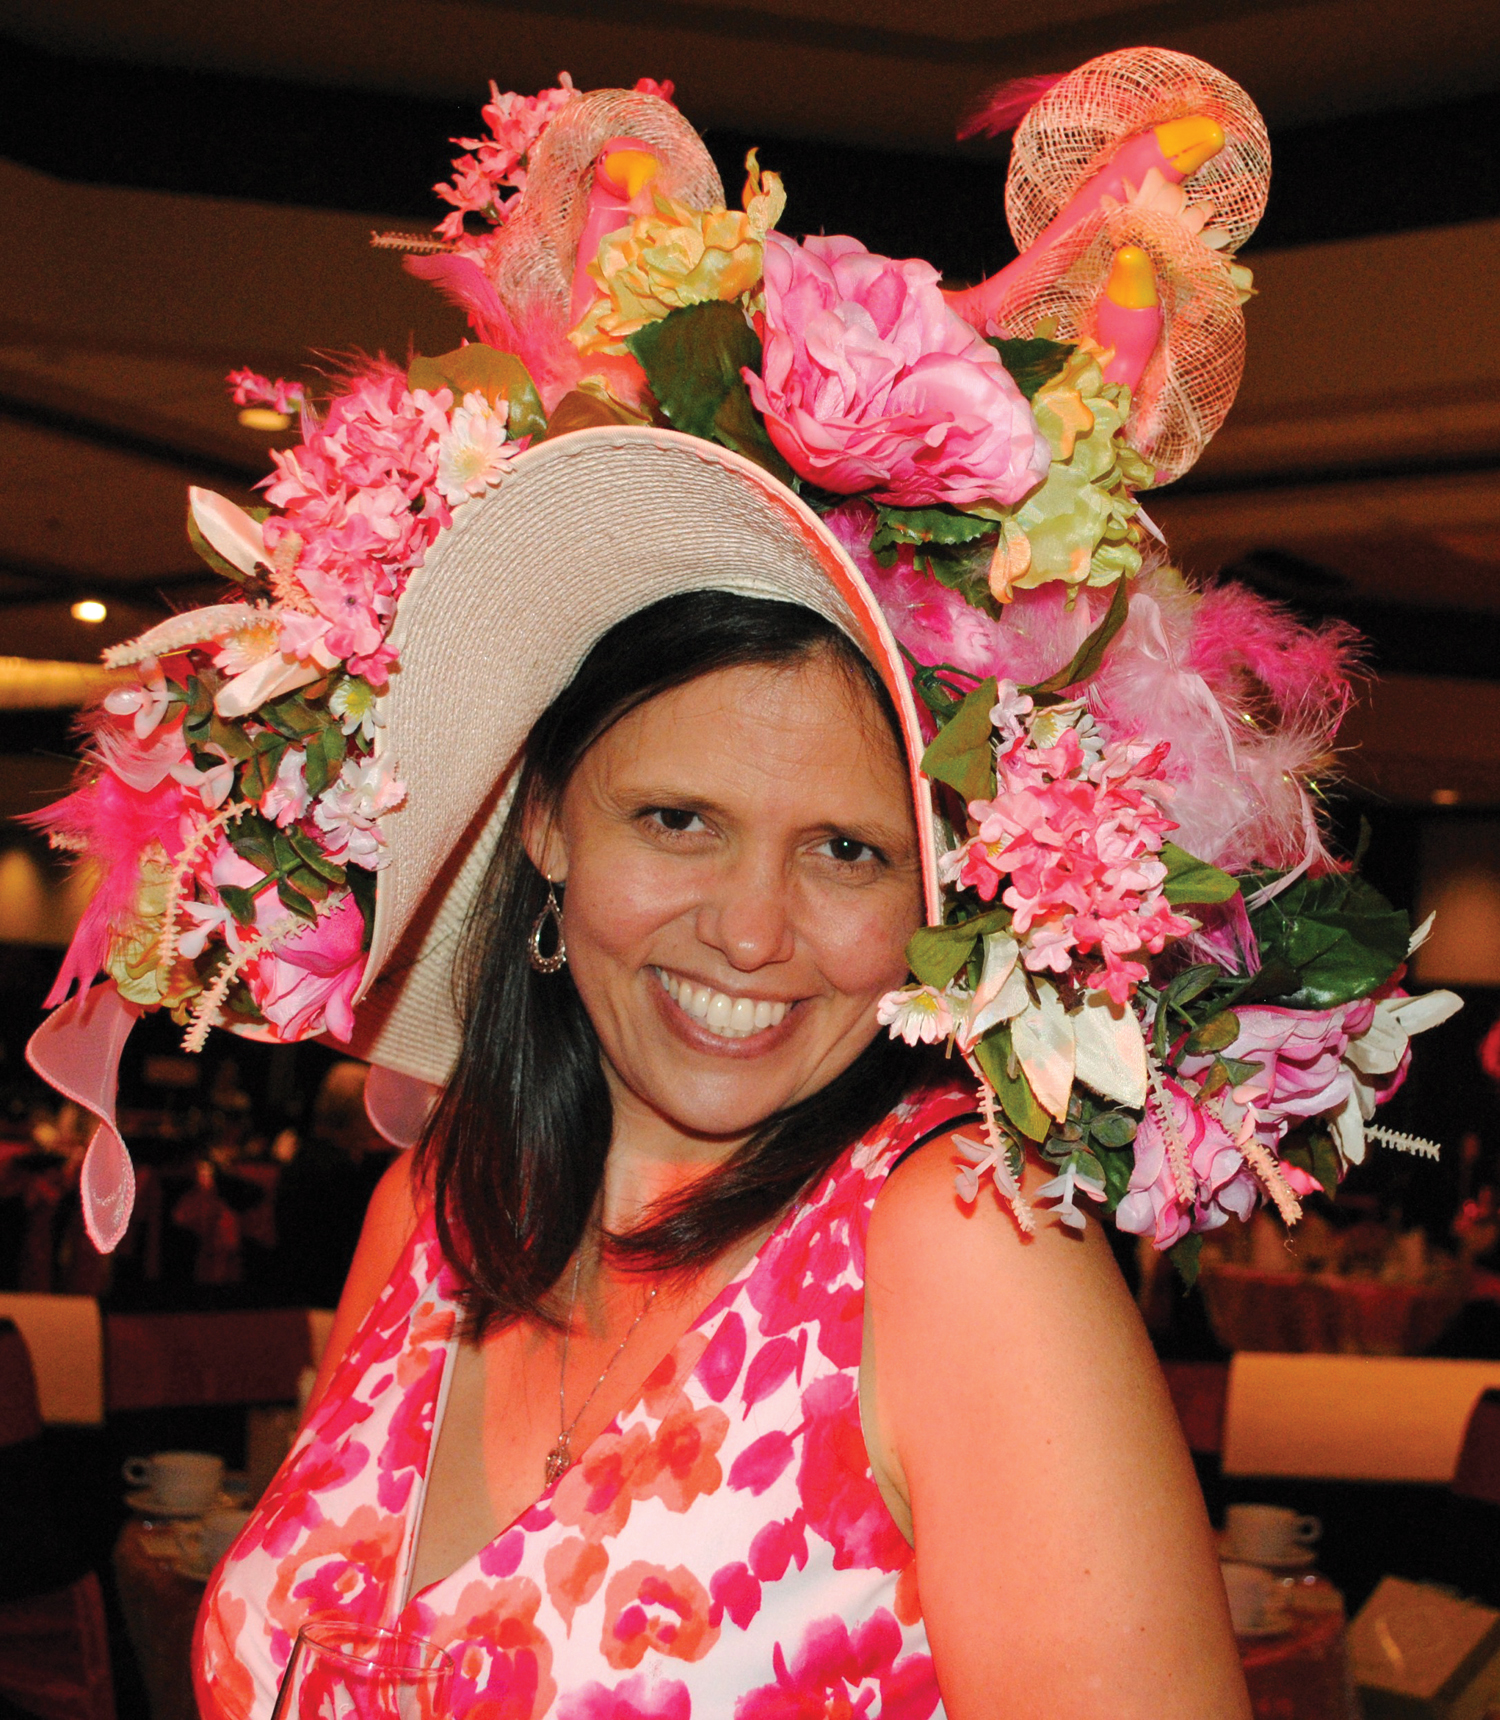 Kristin Leary shows off the beautiful hat she made especially for the Clear Lake Panhellenic Fall Fashion Show Luncheon.